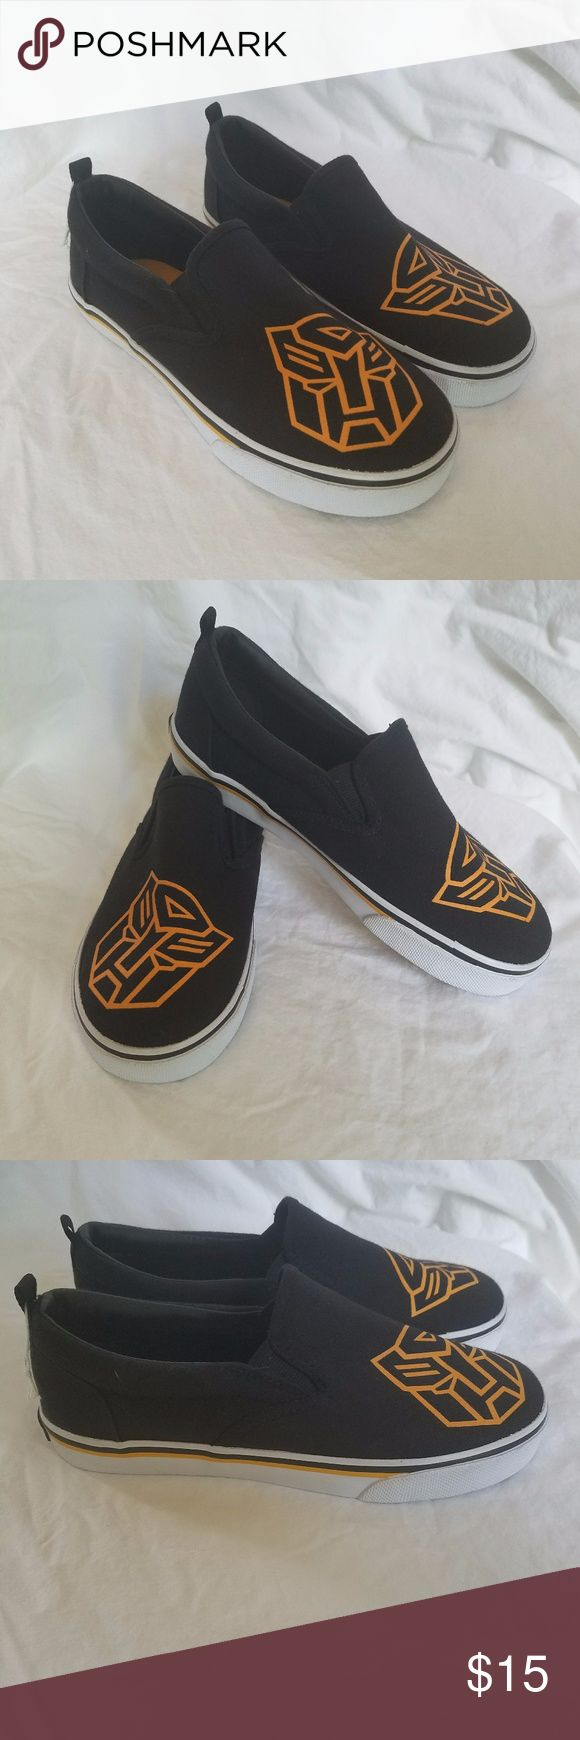 Vintage Hasbro Transformer Slip On Shoes EUC 3.5 * new without price tags, with store string/bundler still attached, labels inside intact * skid resistant, non-marking sole * youth size 3.5  * black canvas upper with orange Transformers decal on the toe * rubber Transformers logo plate in back * black and orange striping along rubber midsole  see photos for detail Non-smoking home, no trades or transactions outside of Poshmark, ask all questions prior to purchase. Transformers Shoes